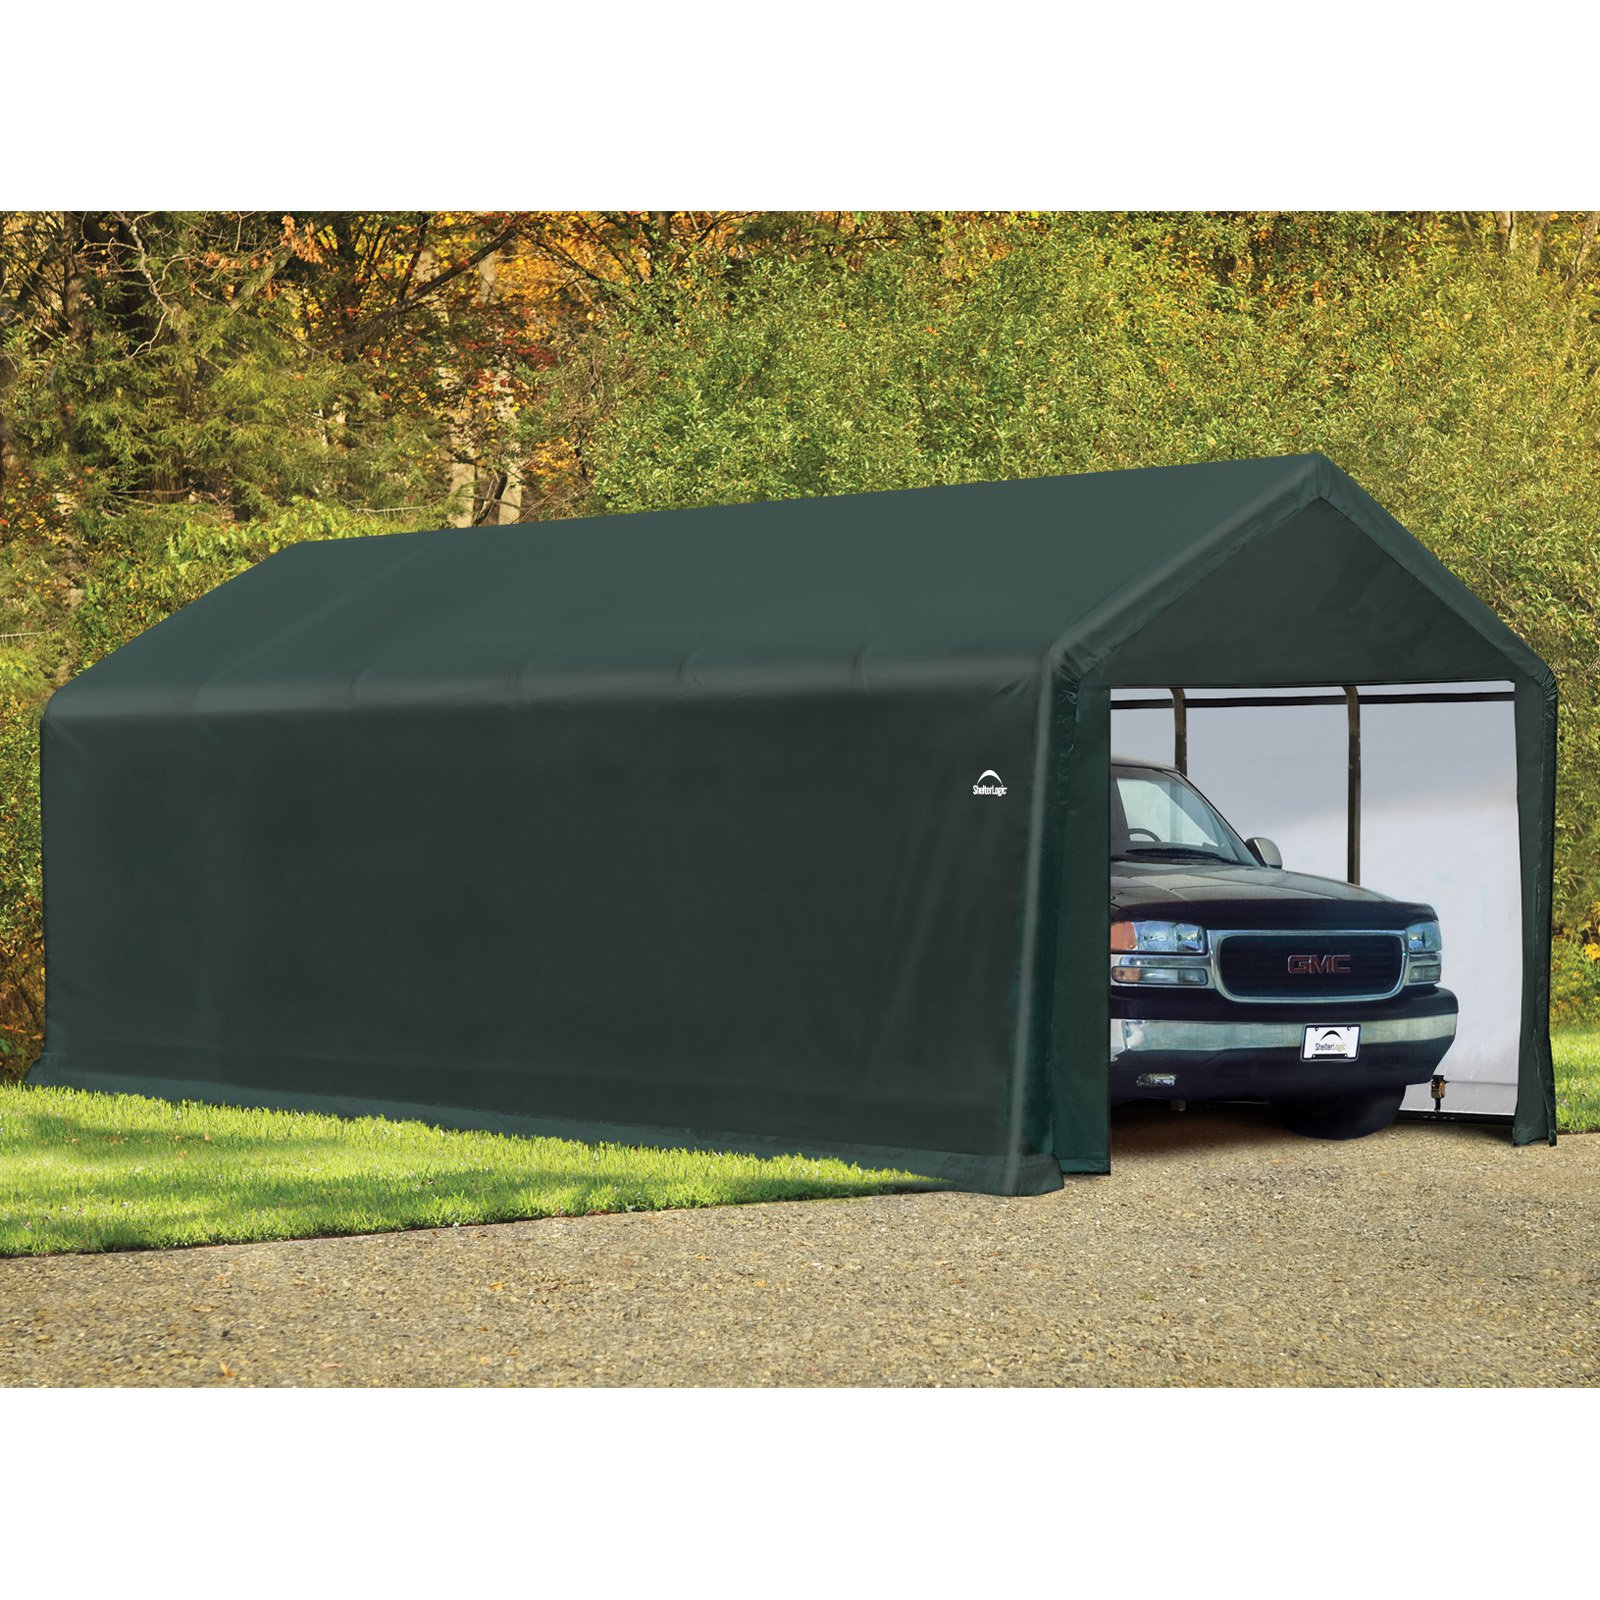 ShelterTube 12' x 30' x 11' Peak Style Garage/Shelter, Green